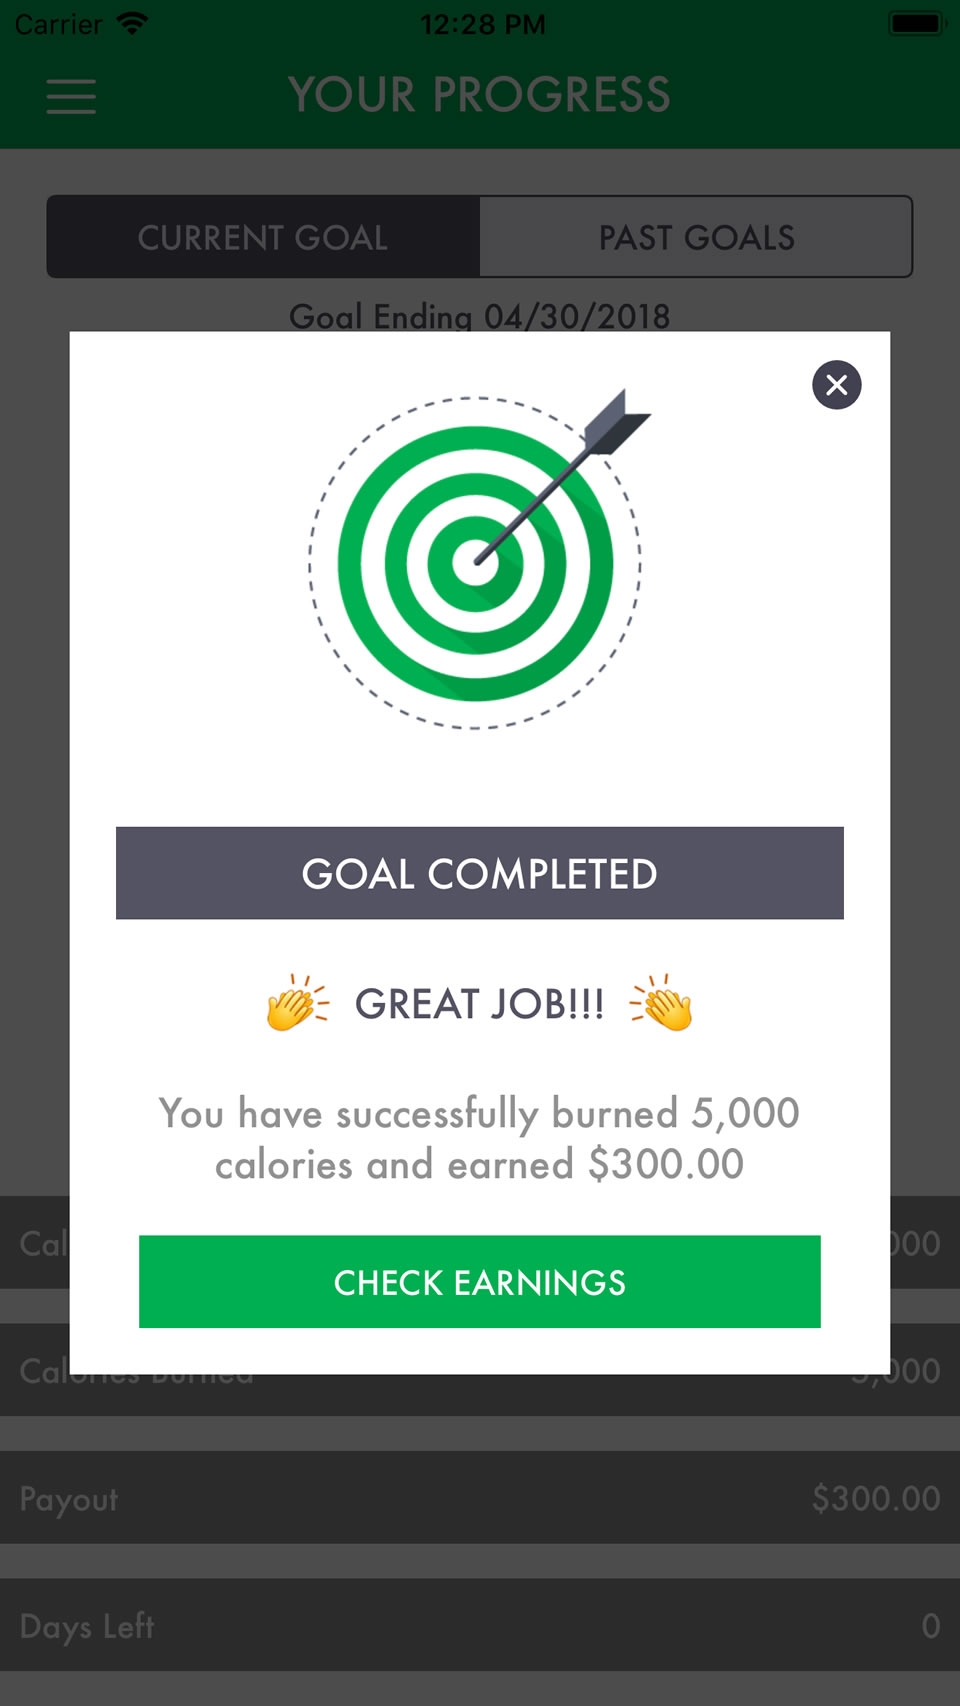 goal completed